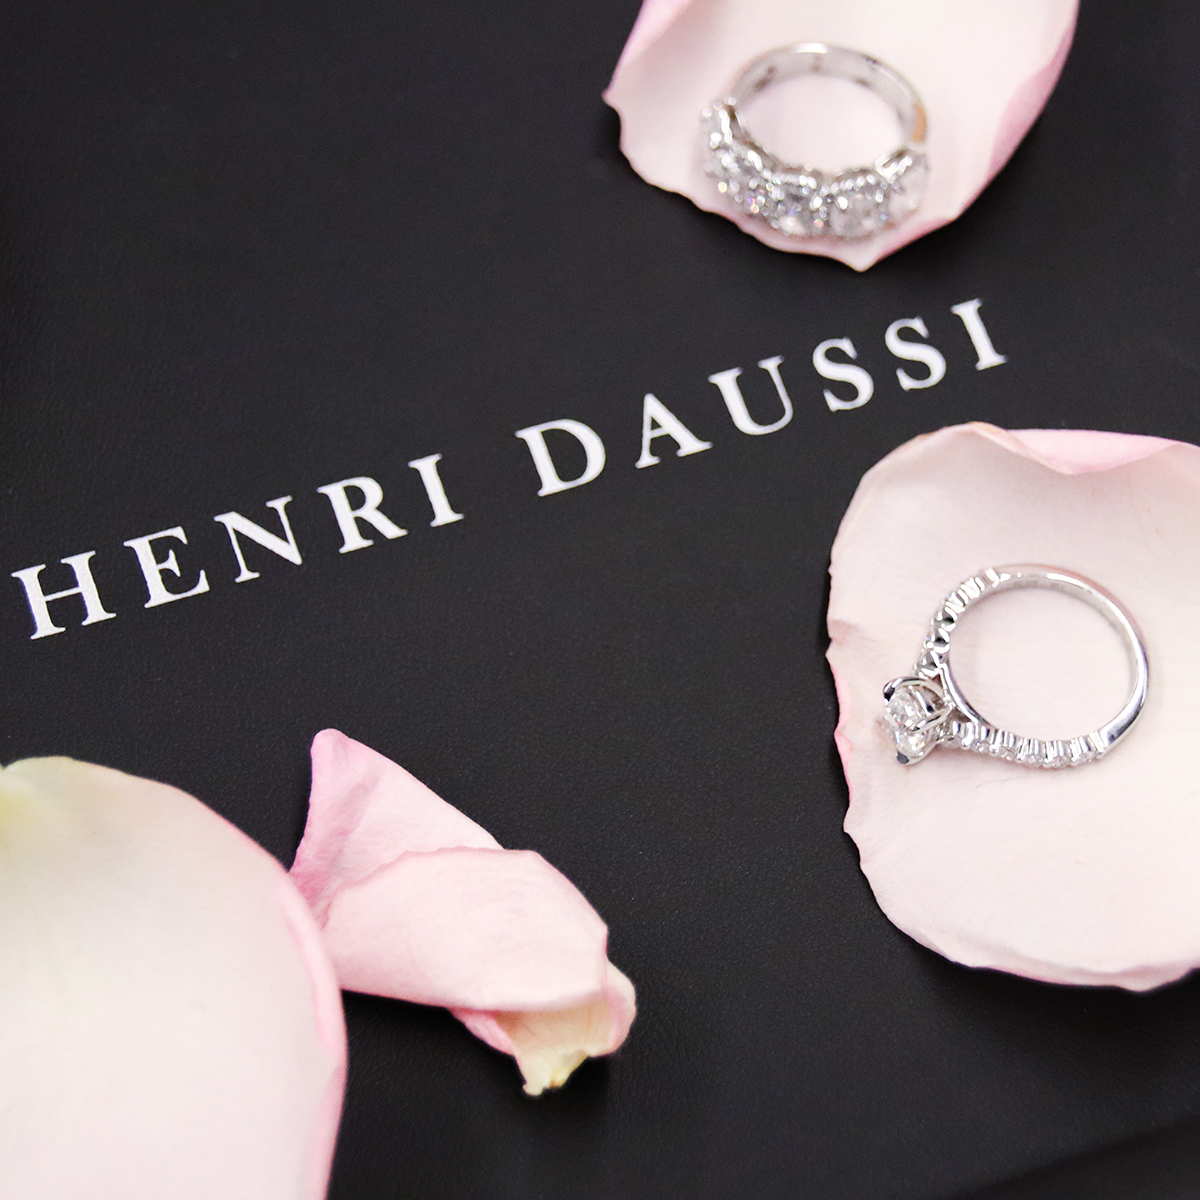 Exactly one month until Valentine's Day ♥  Hoping to give a unique Henri Daussi piece to your special someone? This week may be your last chance to get it in time for the holiday!   Visit your local Henri Daussi retailer ASAP.  #ValentinesDay #GiftIdeas #HenriDaussi #Rings https://t.co/j3PqFCF0It